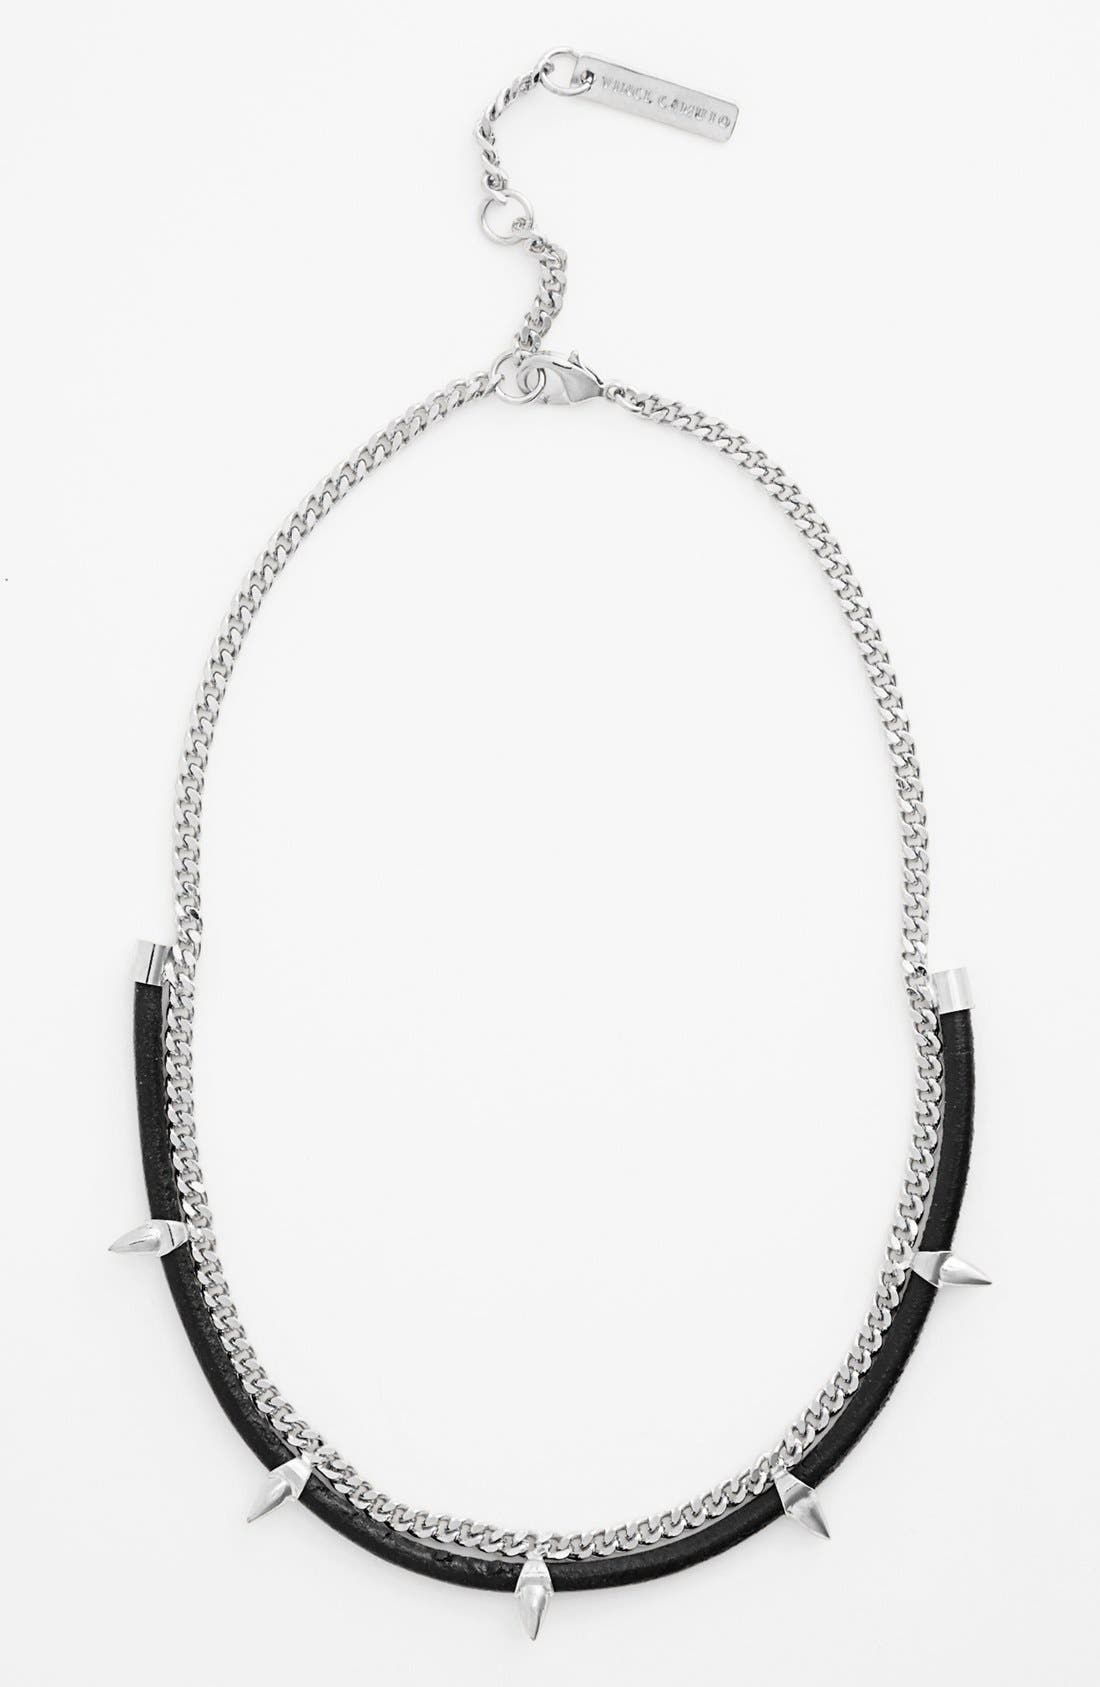 Main Image - Vince Camuto 'Bullet Proof' Studded Frontal Necklace